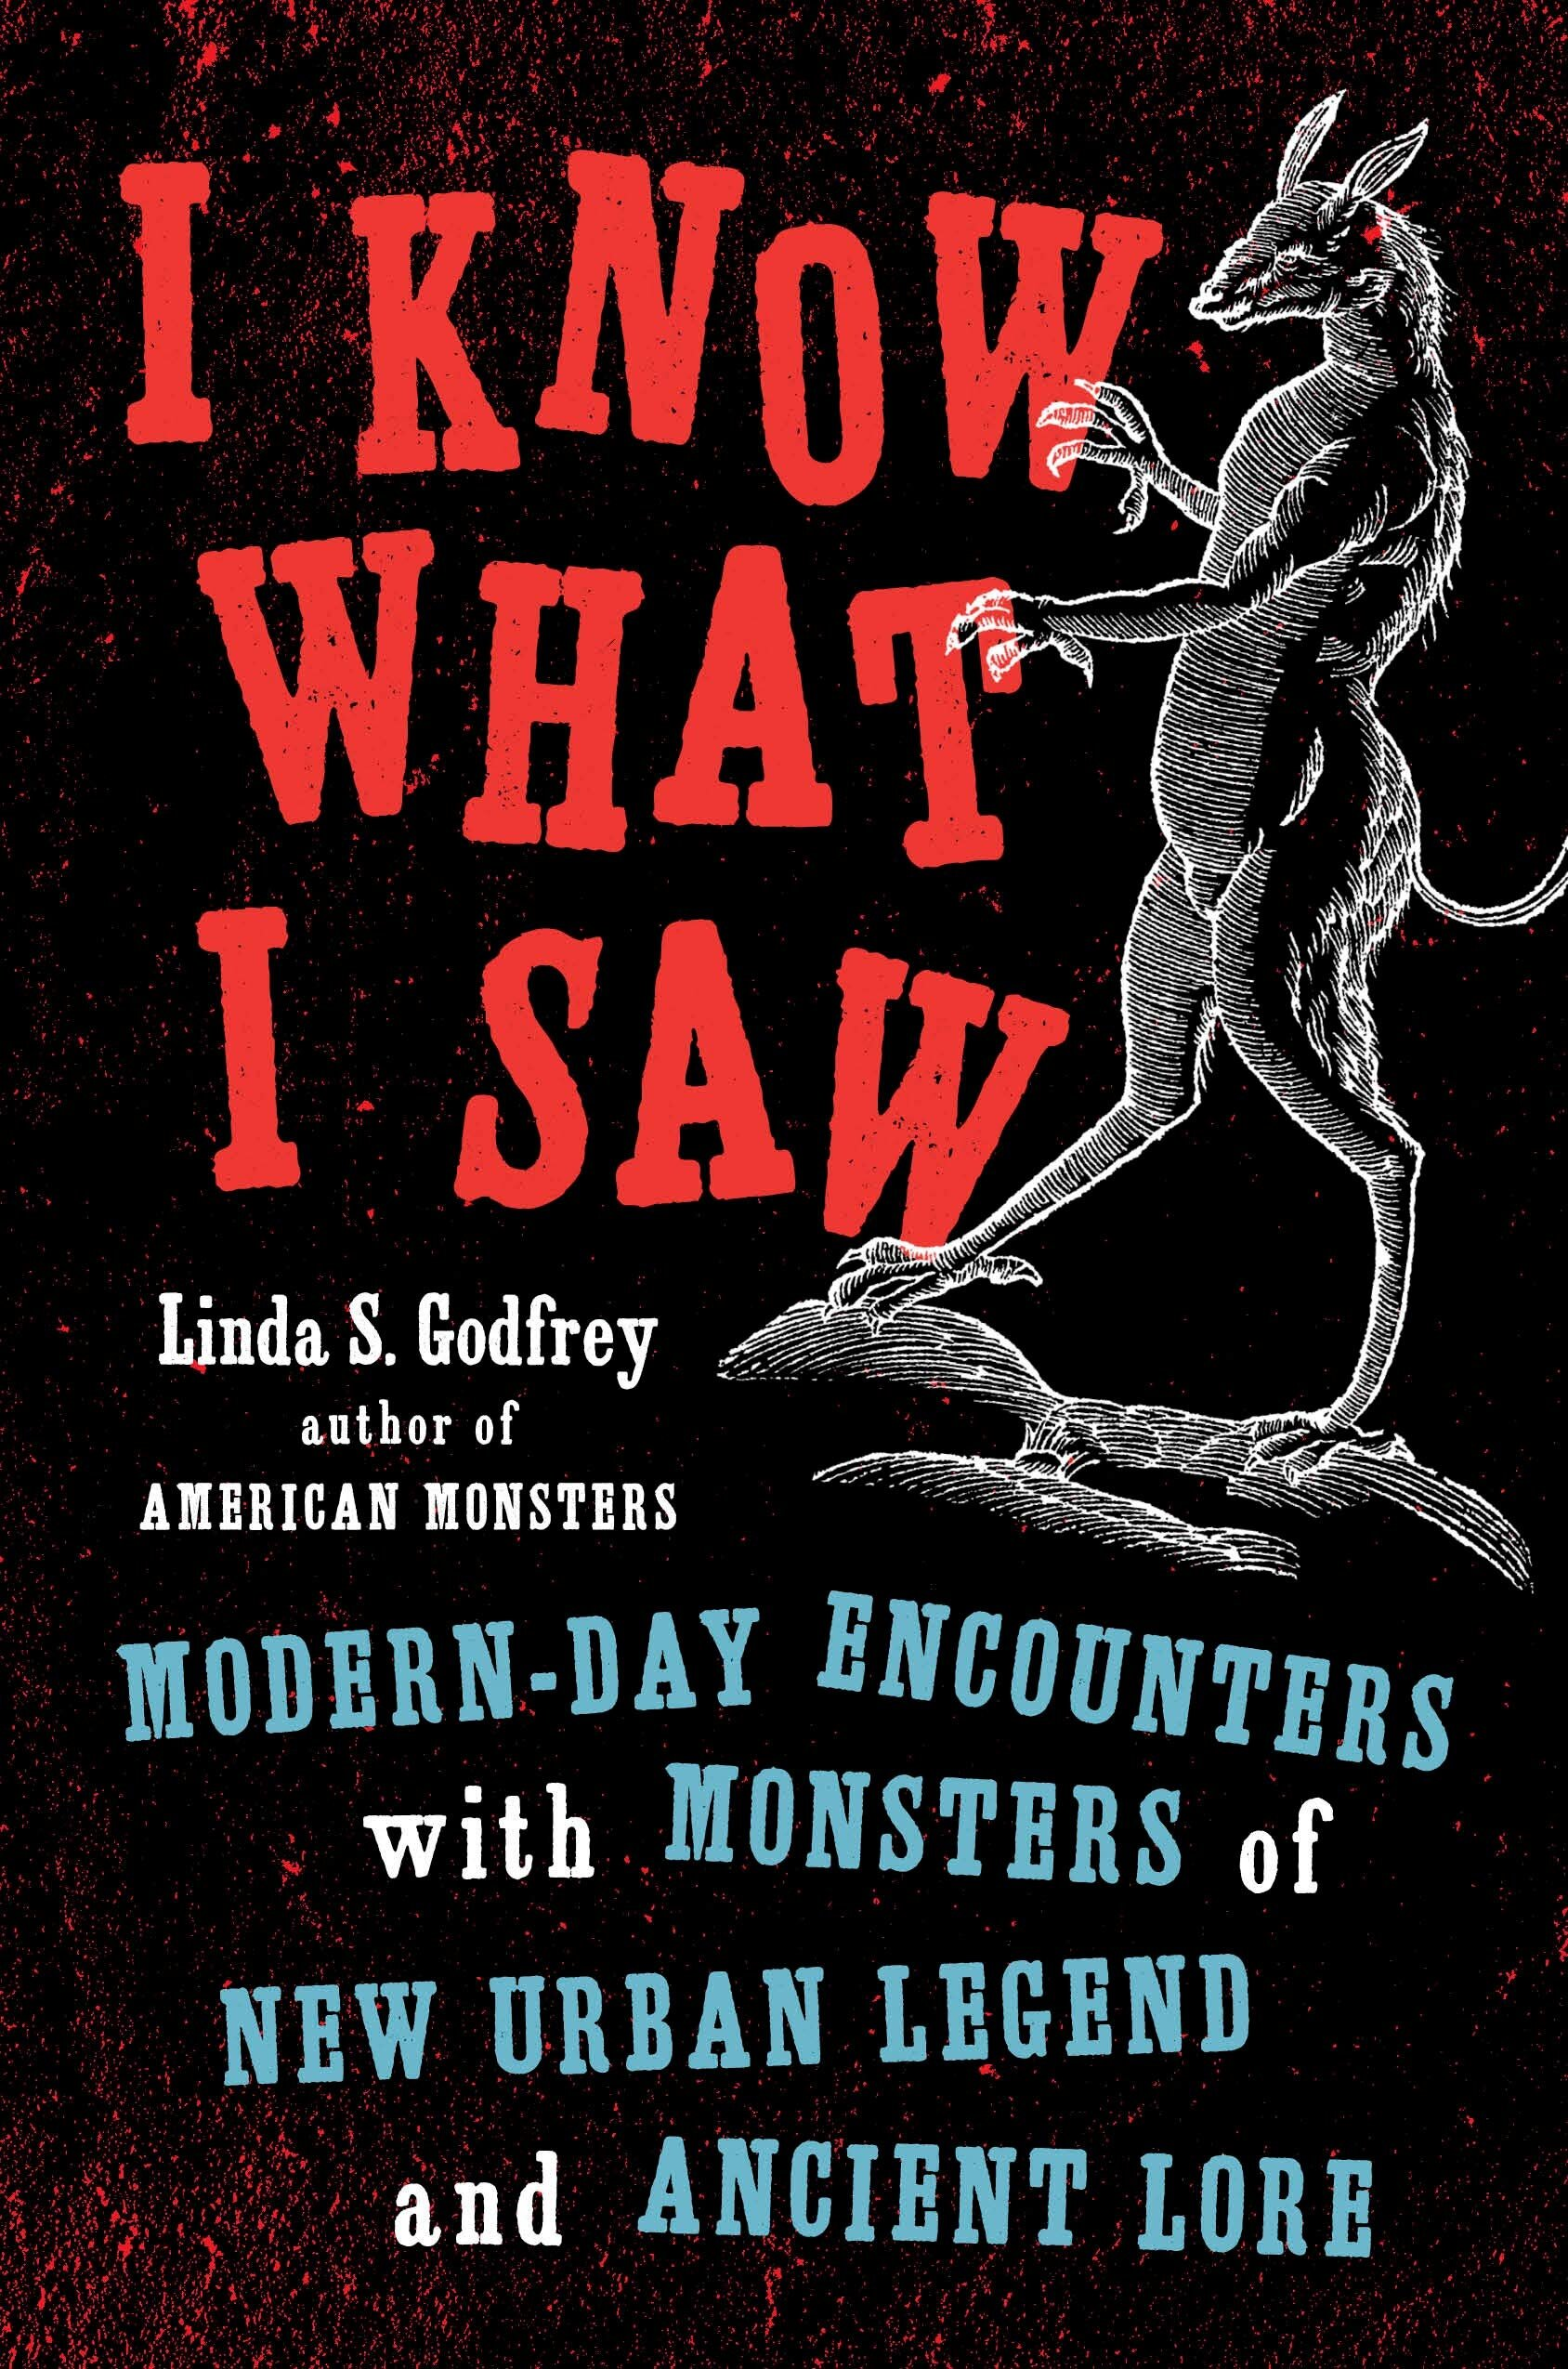 I Know What I saw by Linda S. Godfrey.jpg